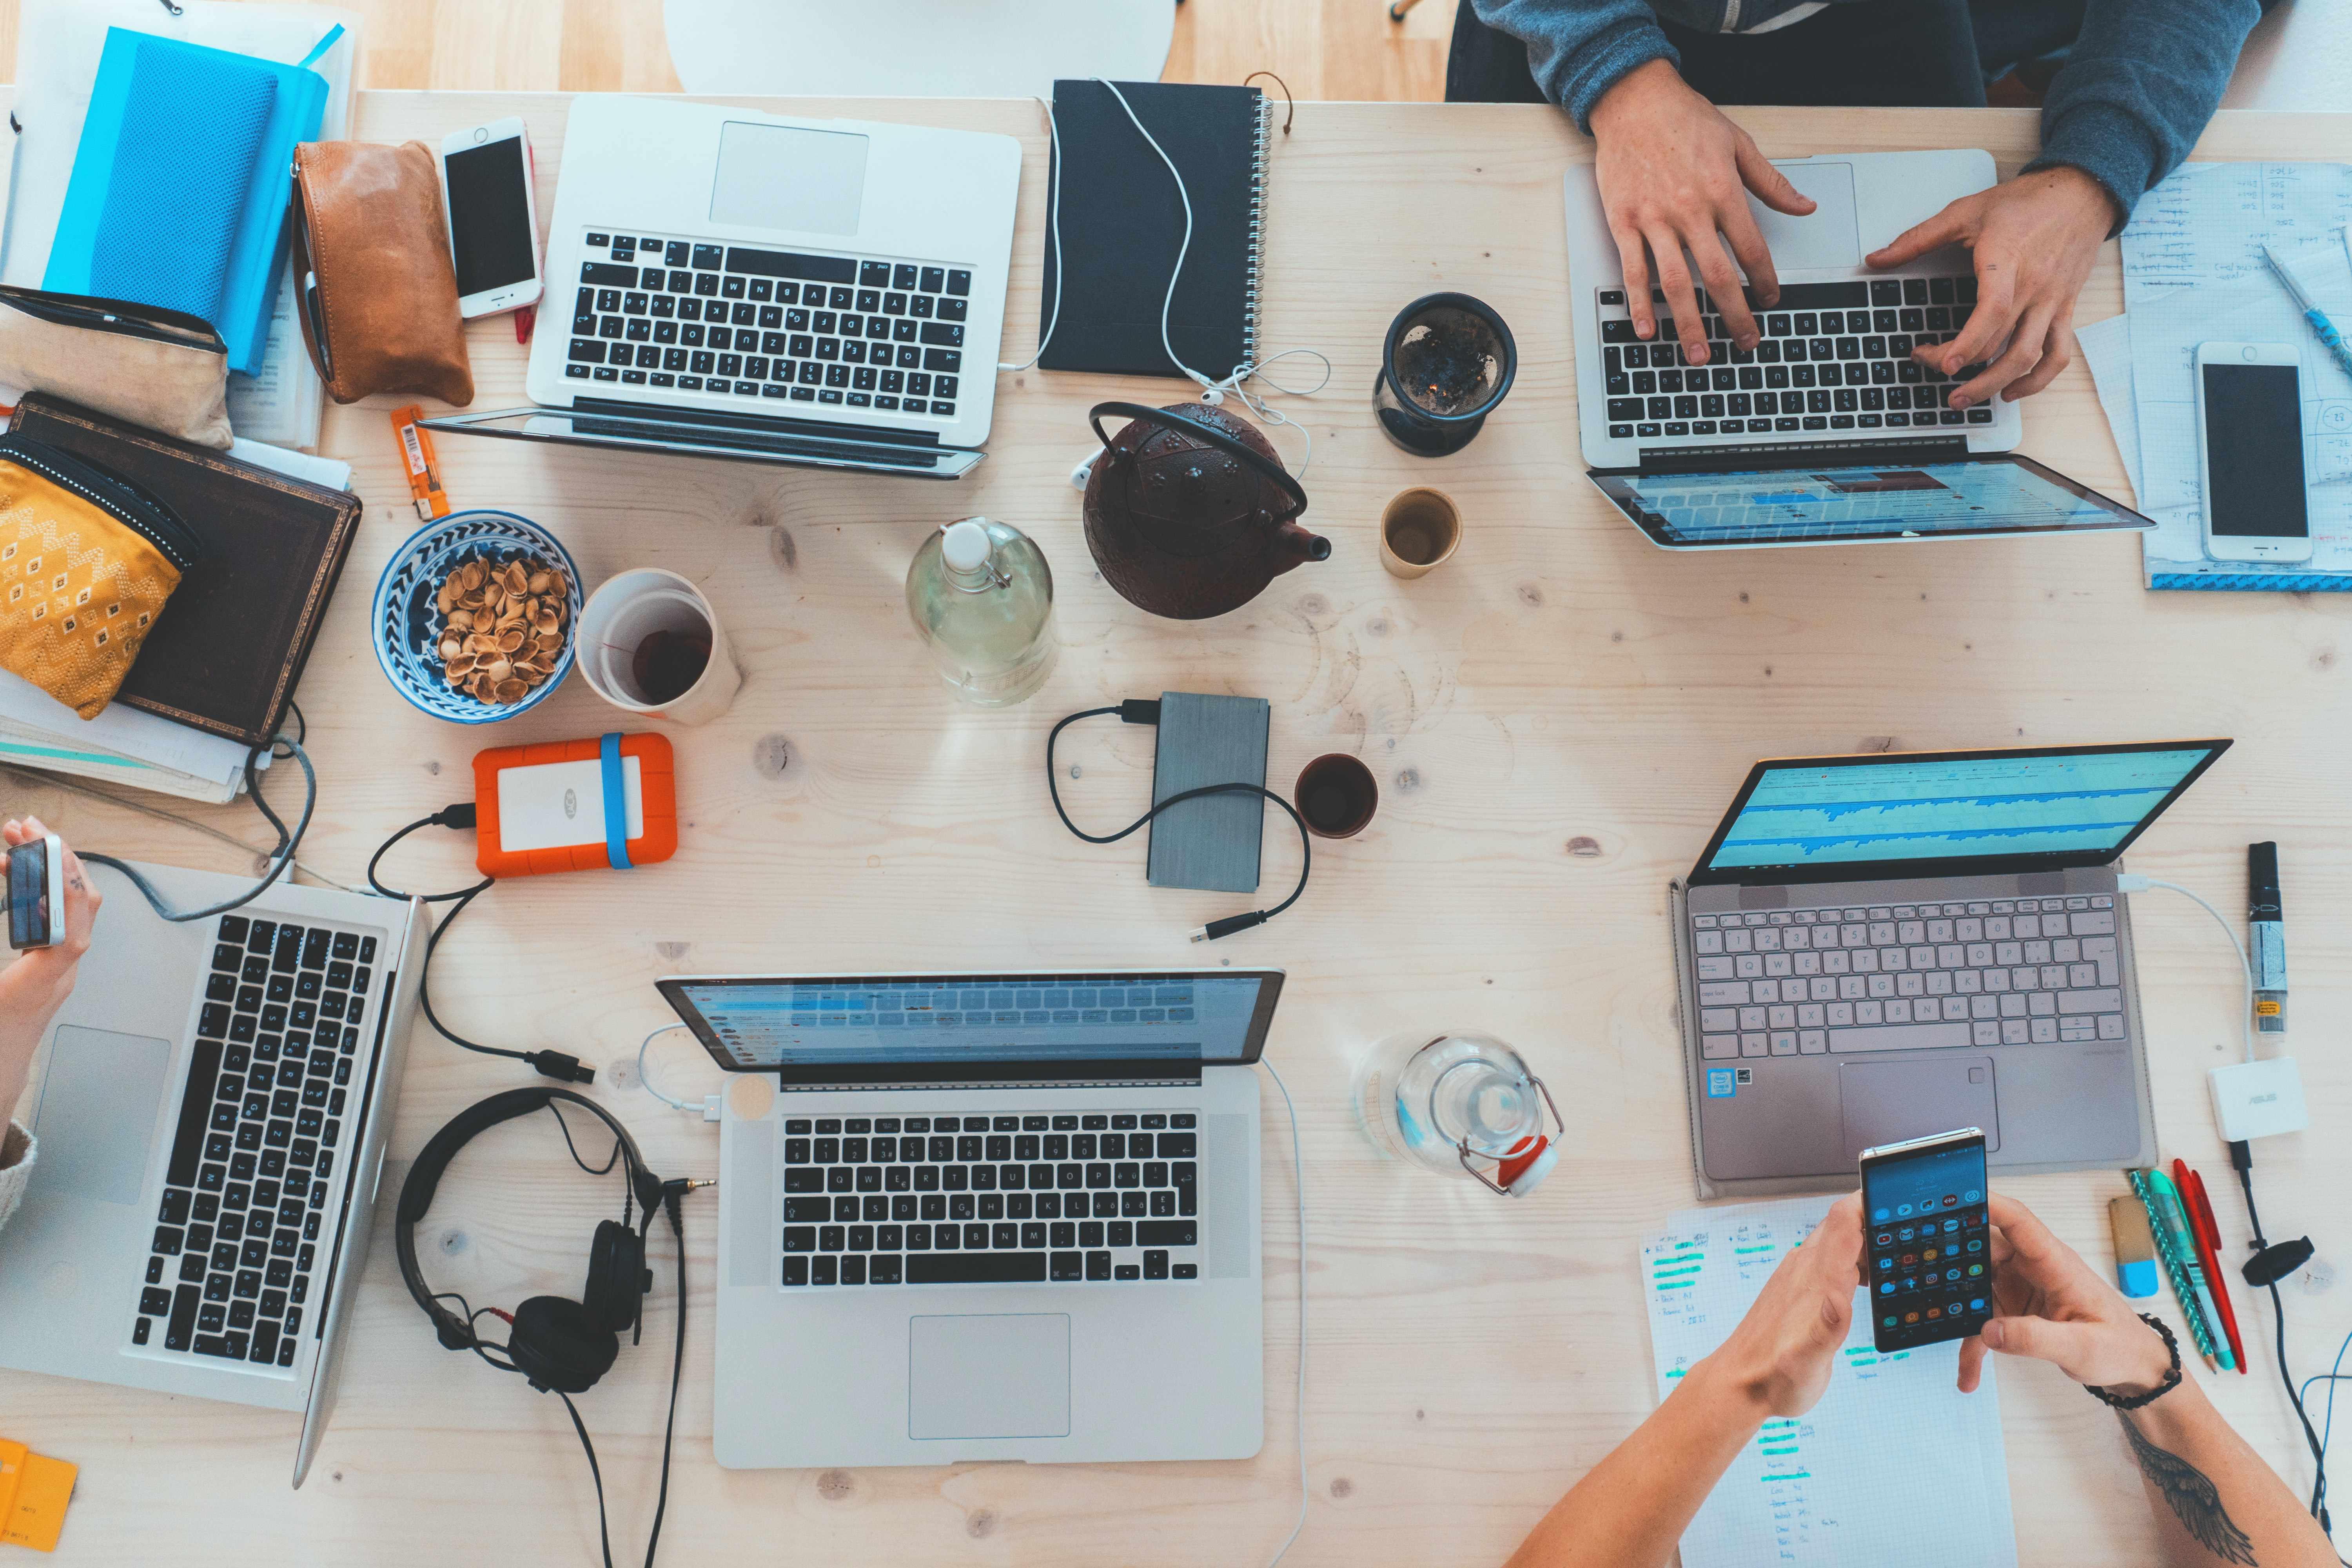 Nonprofits Have The Tools To Operate Remotely, But What Should They Work On?